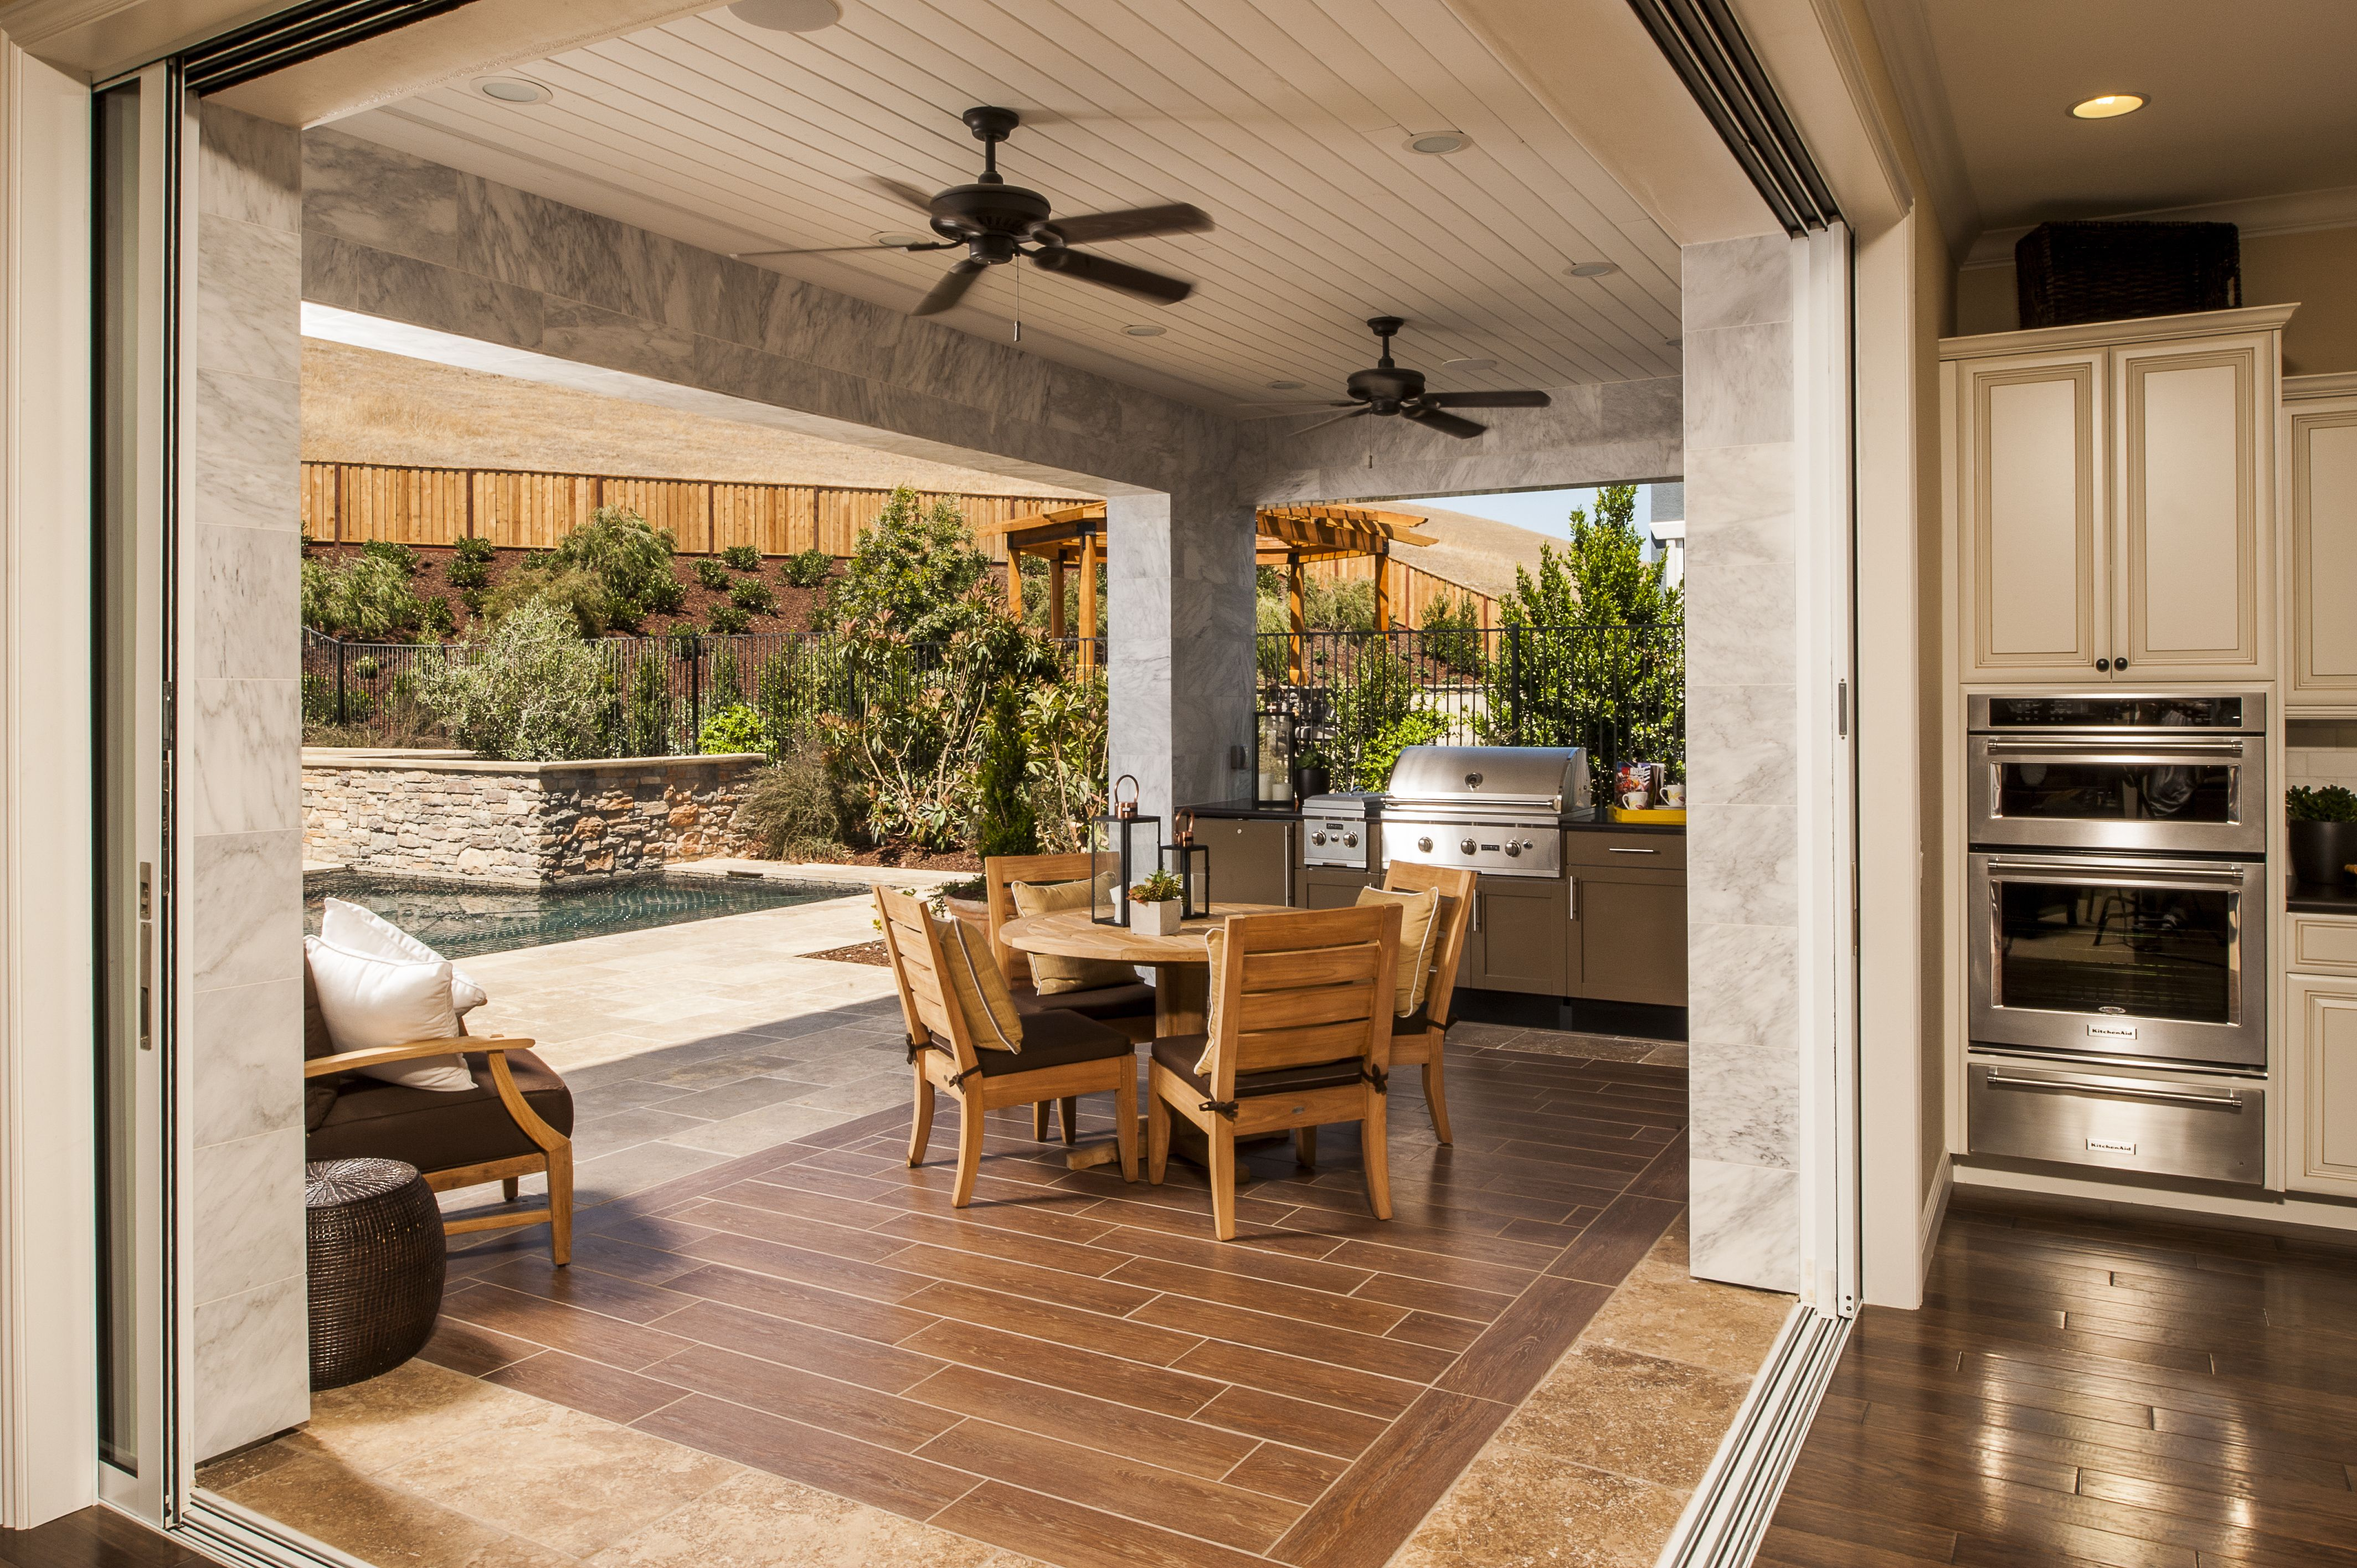 8 outdoor kitchen designs ideas plans california room outdoor kitchen design family room on outdoor kitchen and living space id=99386